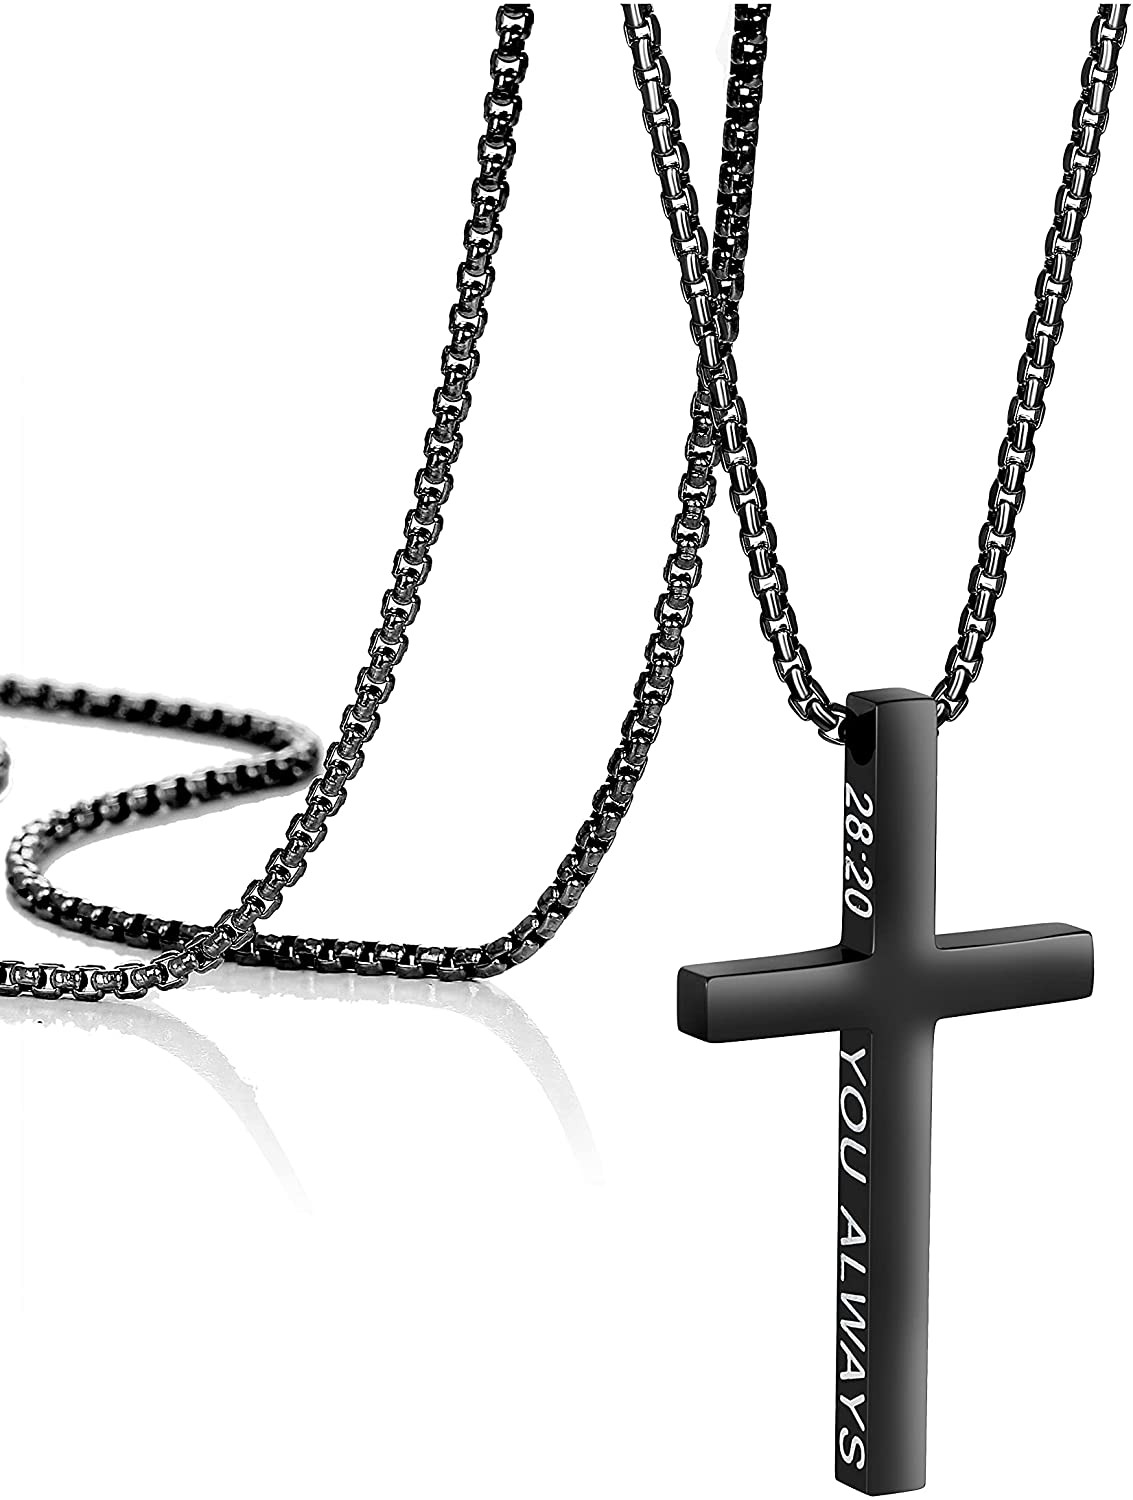 Black Cross Necklaces for Men Boys Christian Faith Religious Minimalist Baptism Classical Bible Verse Friendship Jewelry Prayer Gifts Black Plated Stainless Steel Chain Length 16-30 Inch